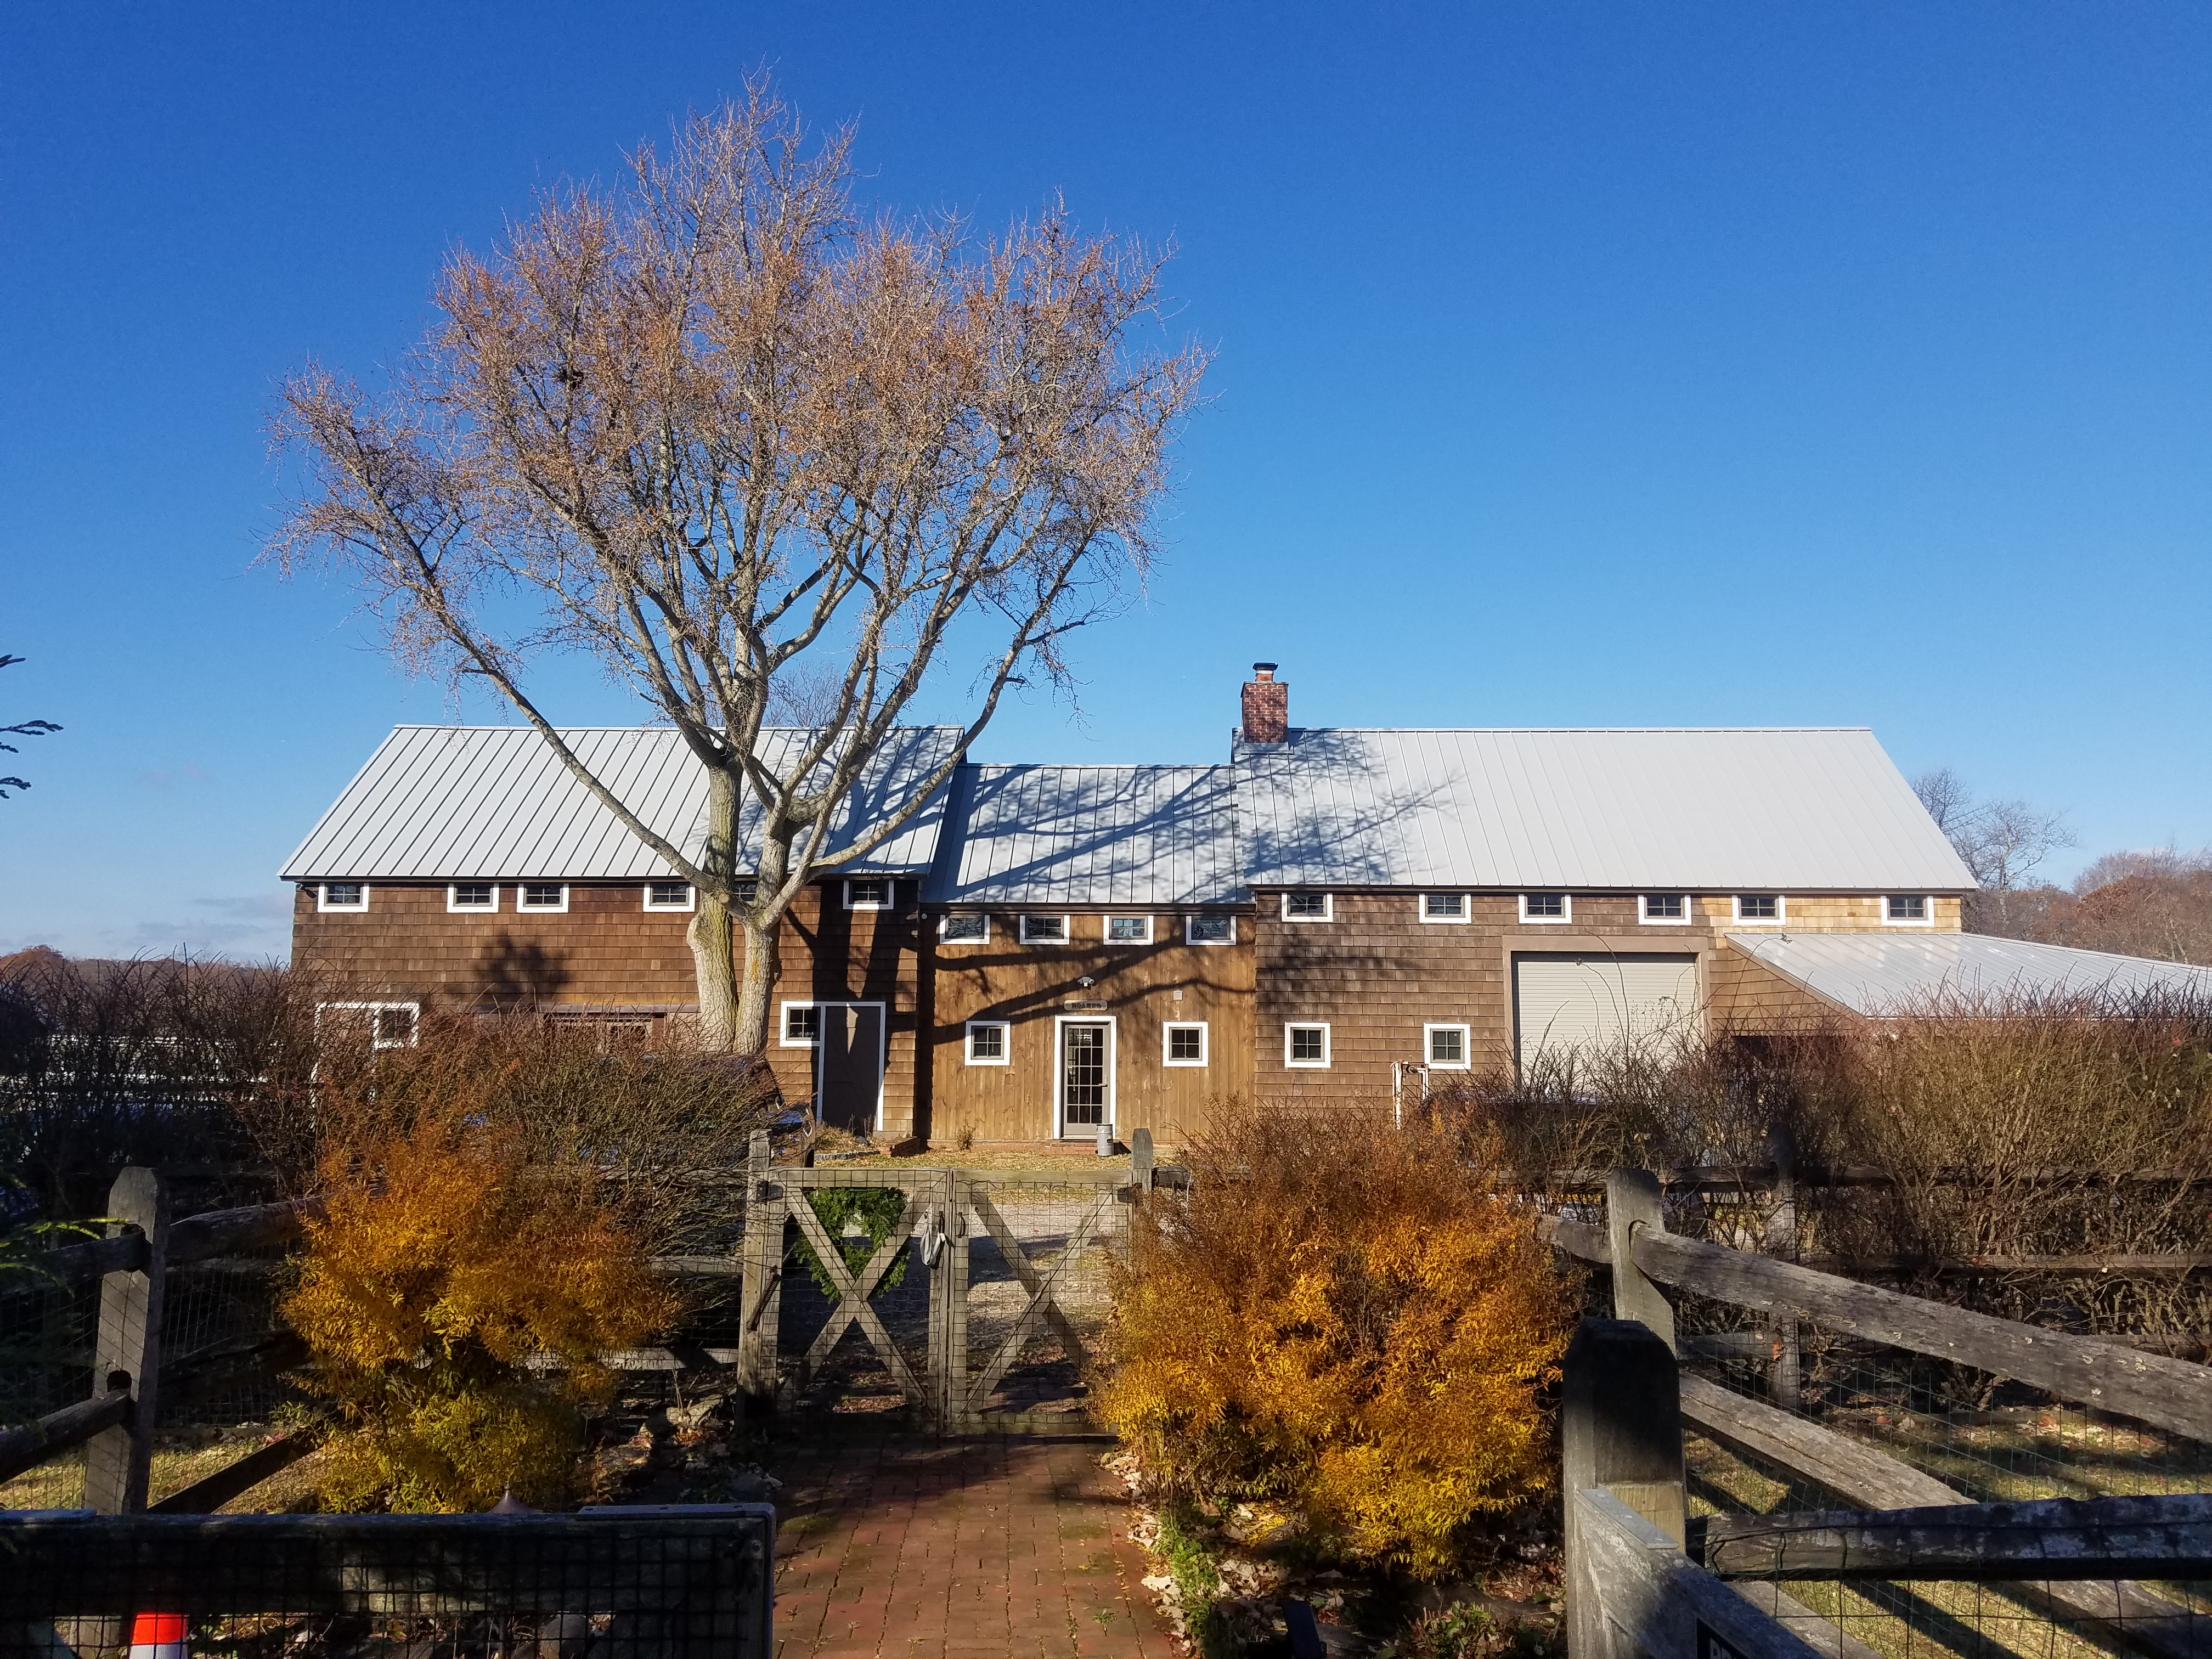 Metal Roofing - protect the old